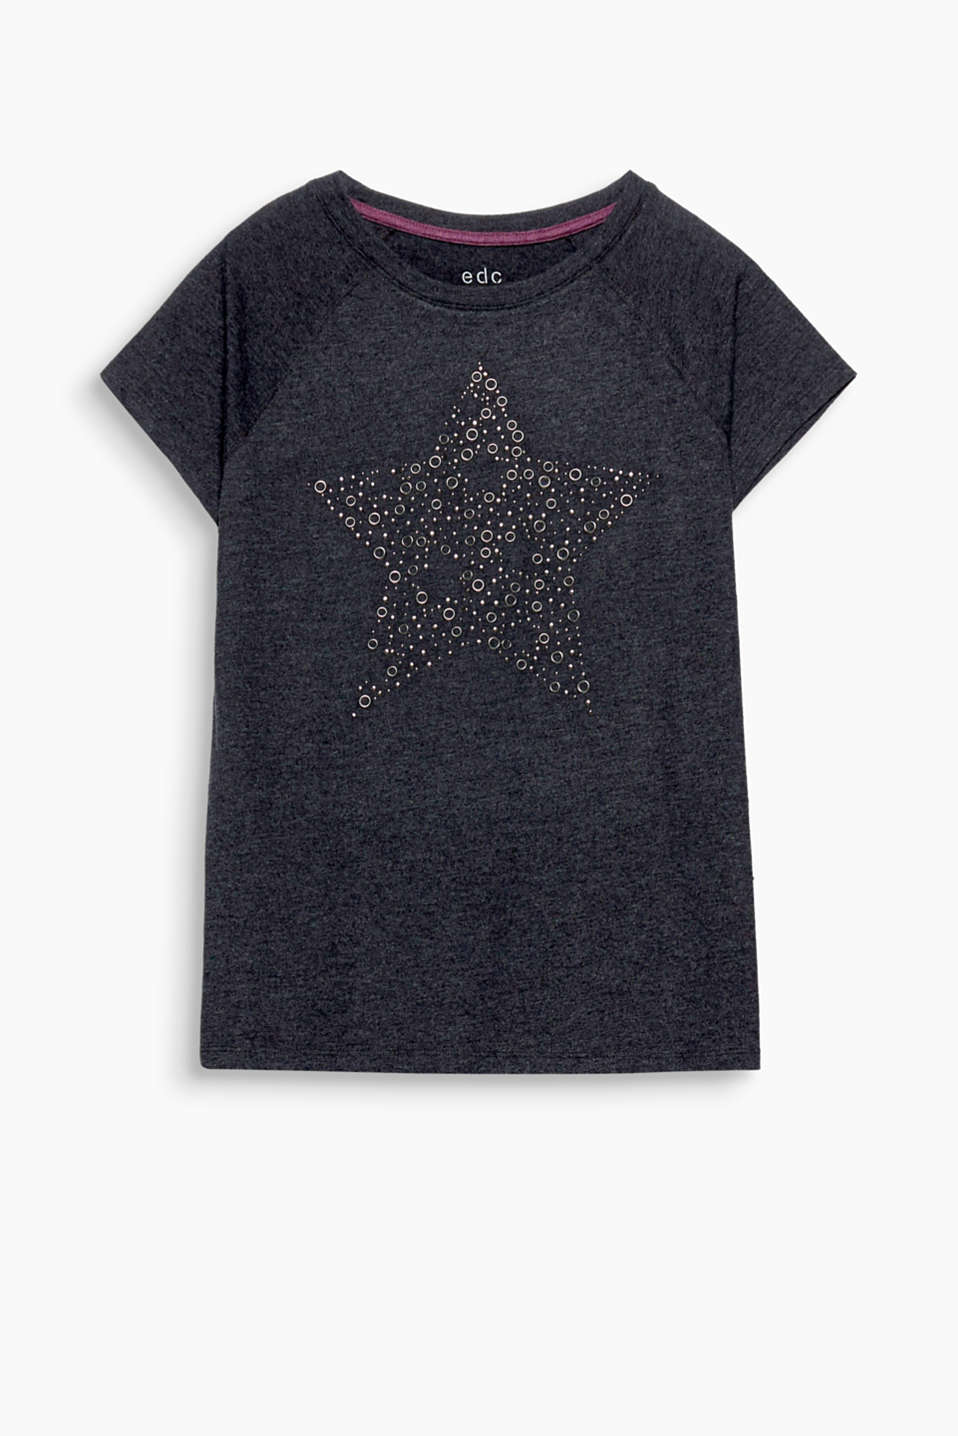 You are the star! L´inserto borchiato a forma di stella dona a questa t-shirt in misto cotone un tocco di stile.